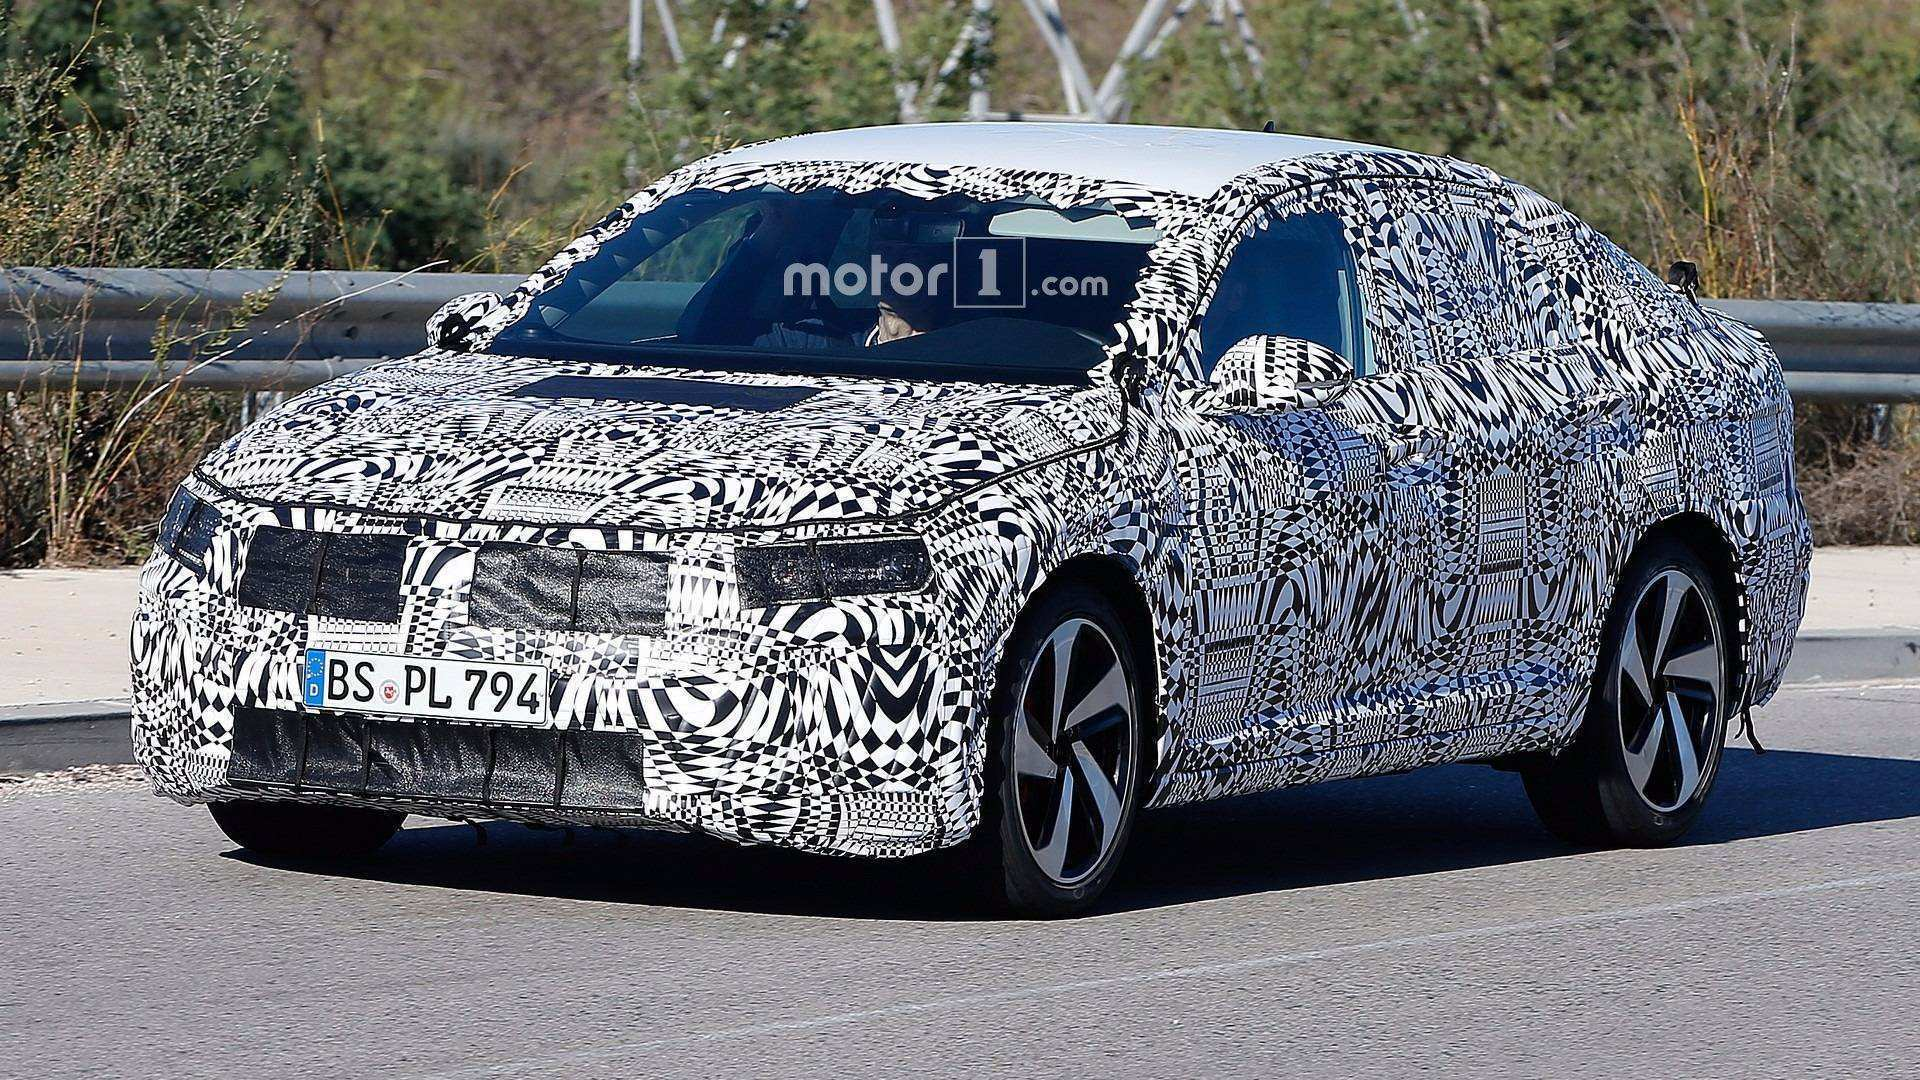 78 Best Review 2019 Jetta Spy Shots Rumors for 2019 Jetta Spy Shots